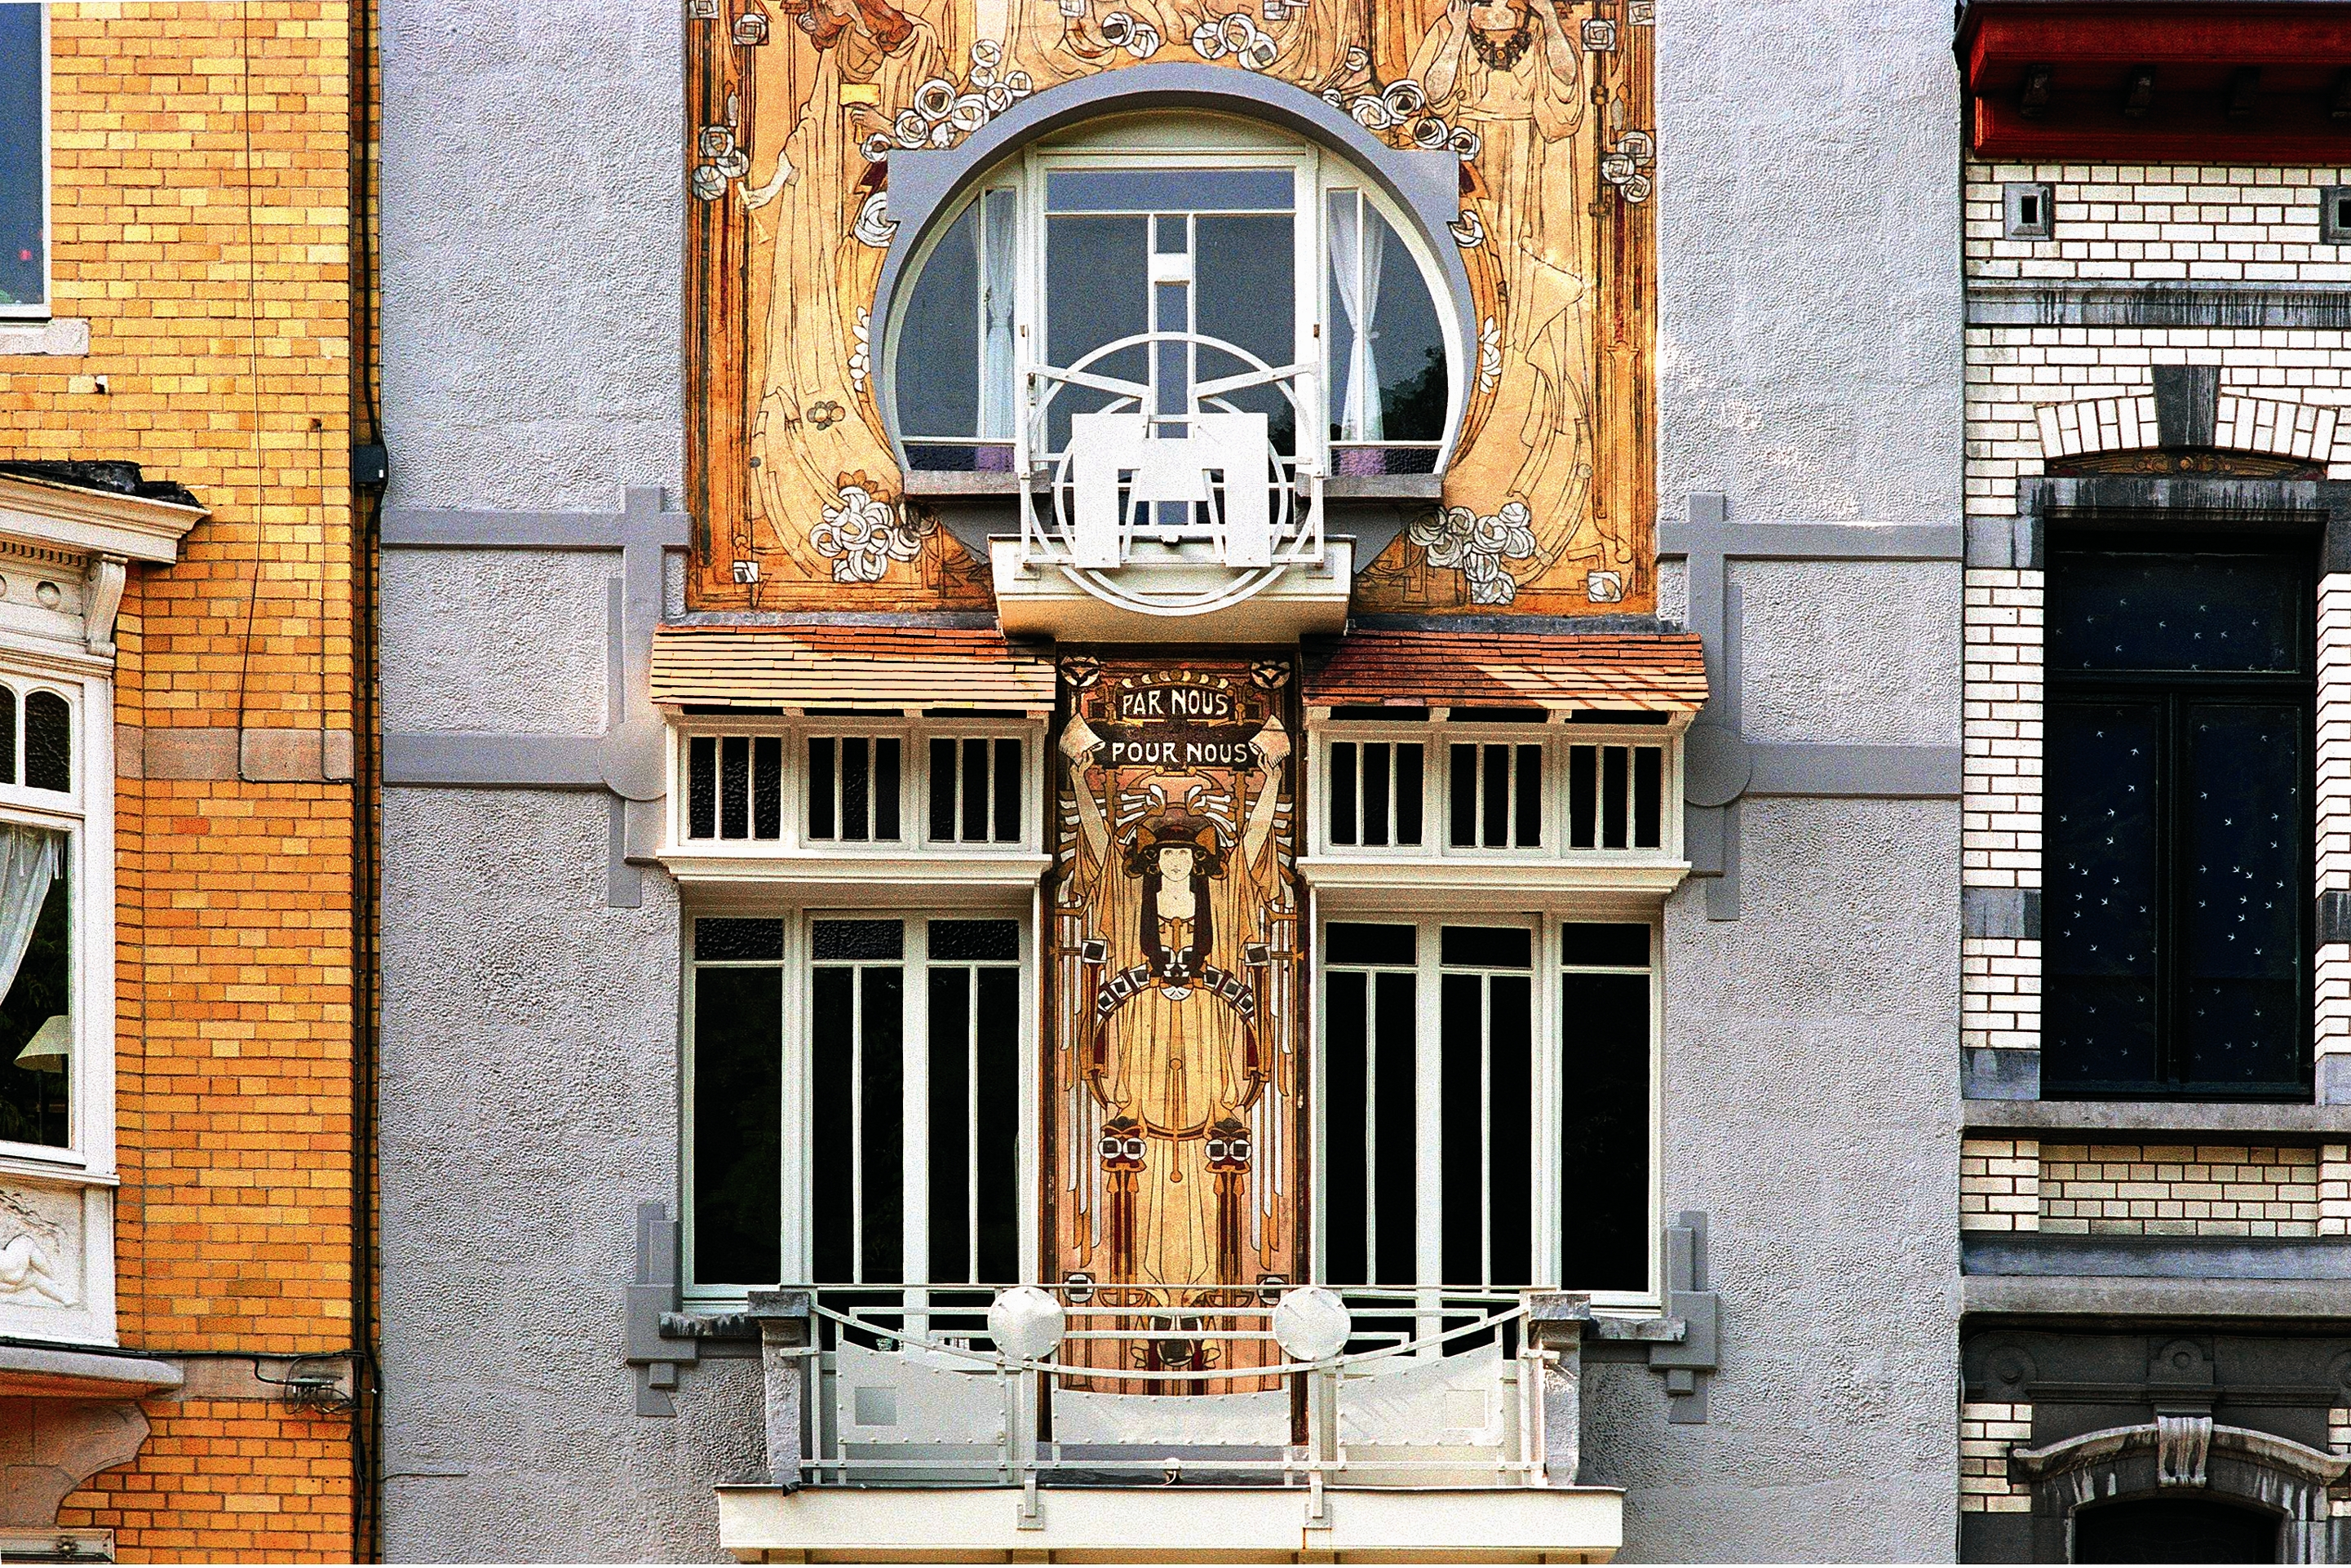 Brussels art nouveau masterpieces tammy tour guide for Maison deco